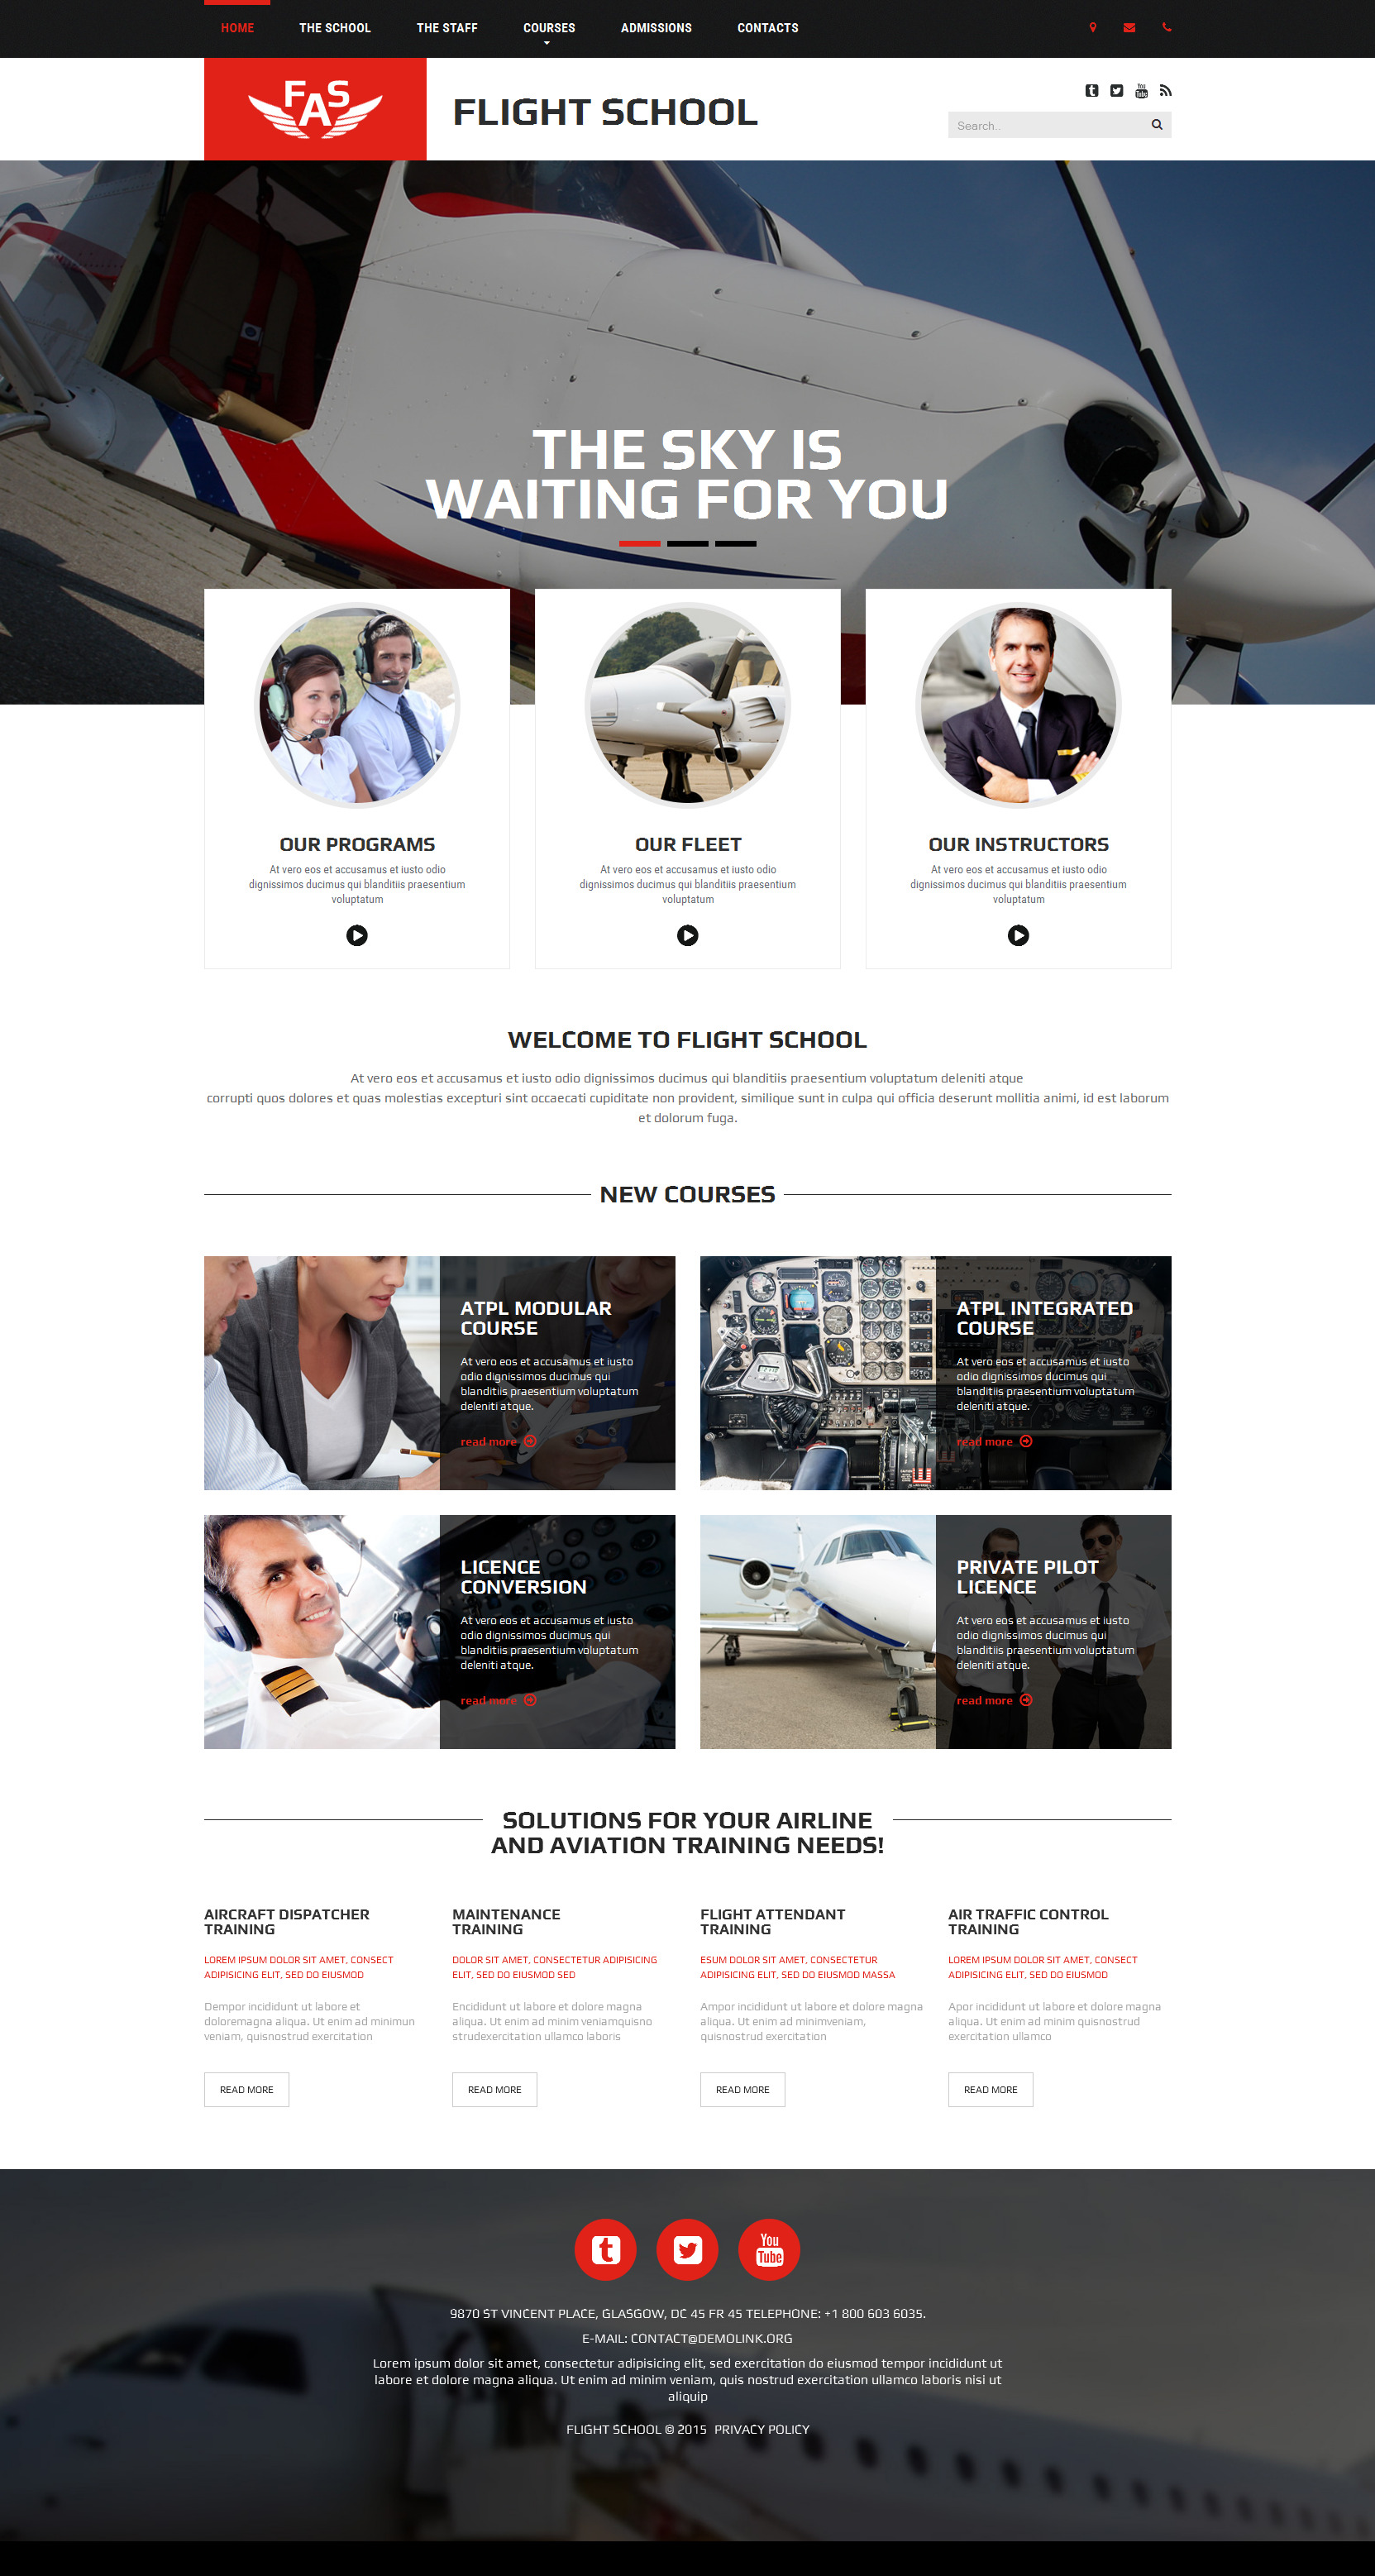 FAS Website Template